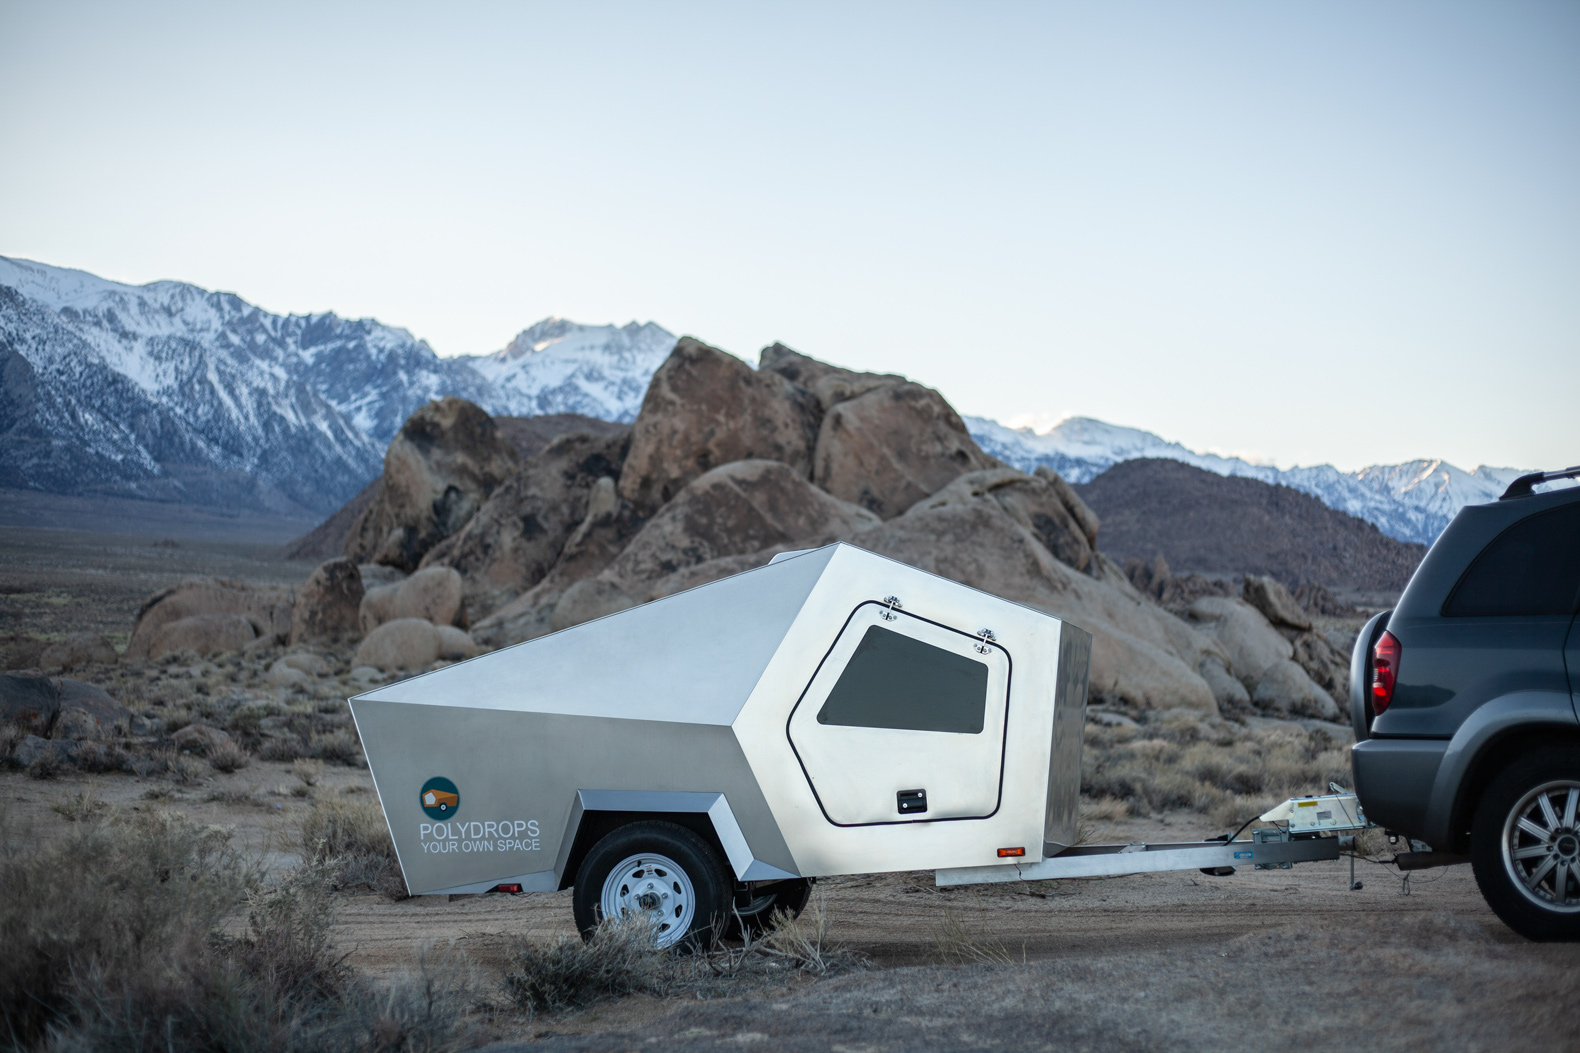 This futuristic, solar-powered travel trailer can be pulled by small cars